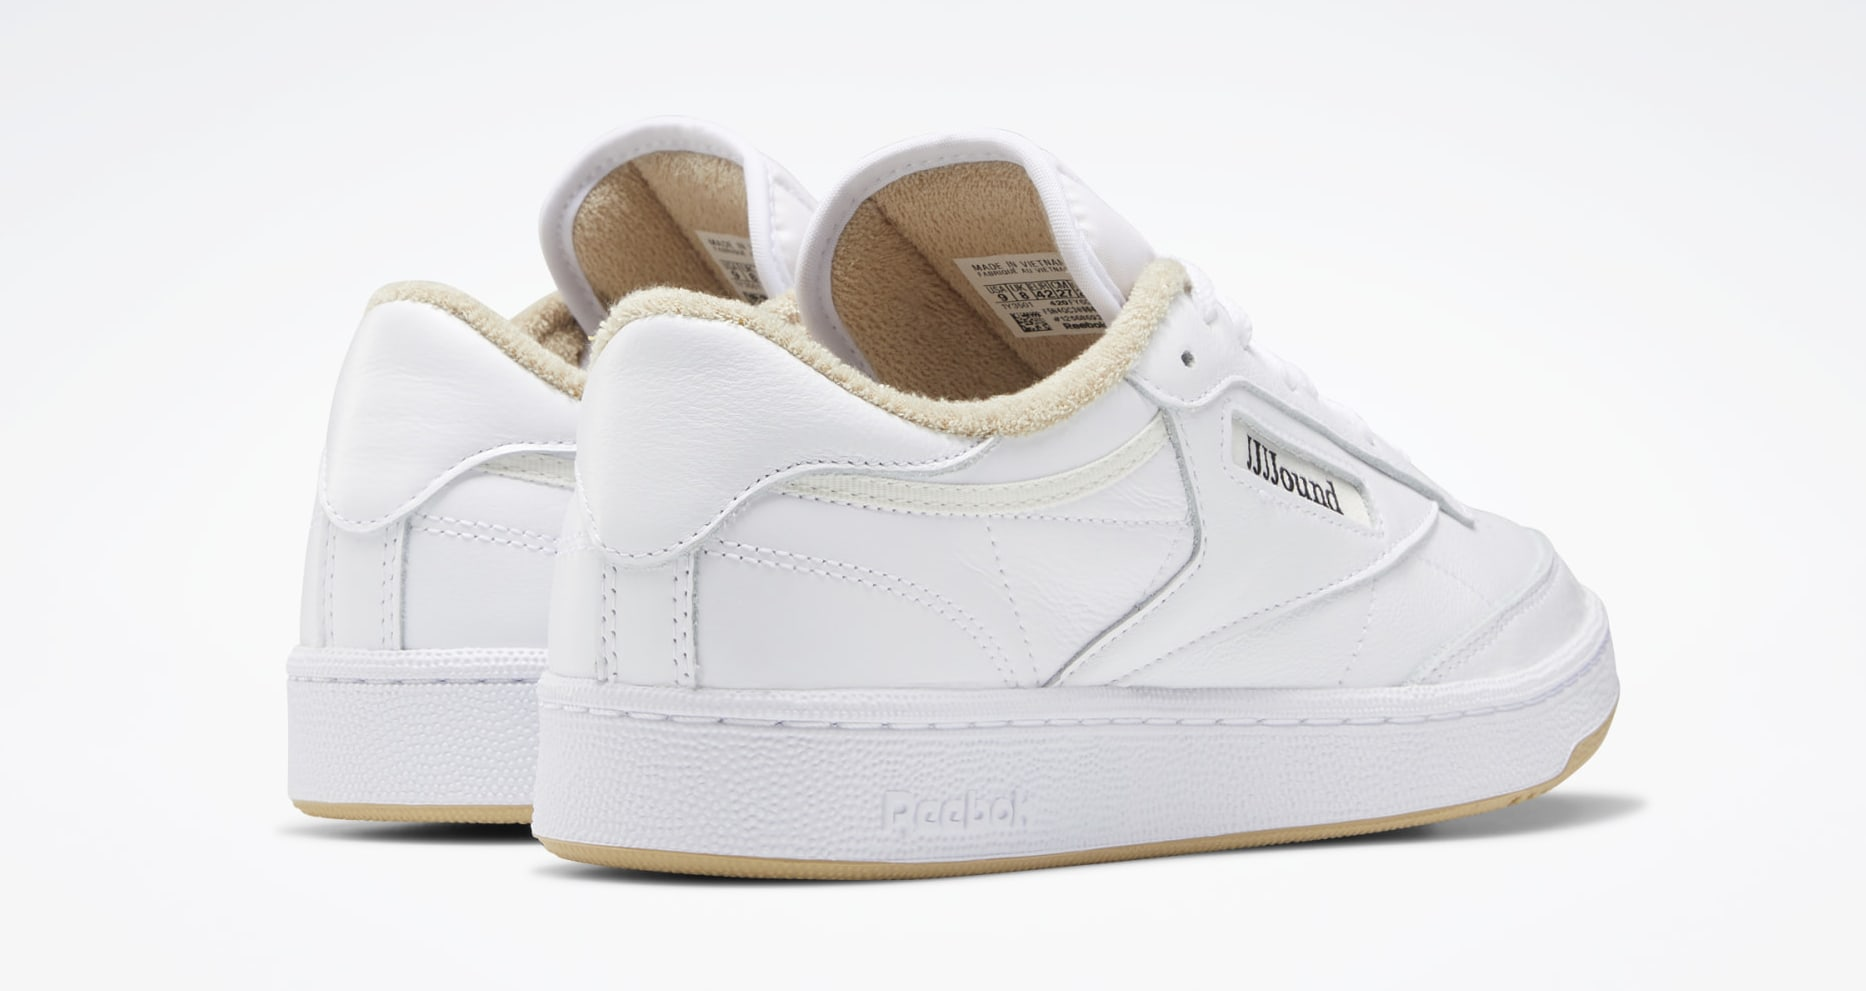 JJJJound x Reebok Club C 'Beige' FY6066 Heel